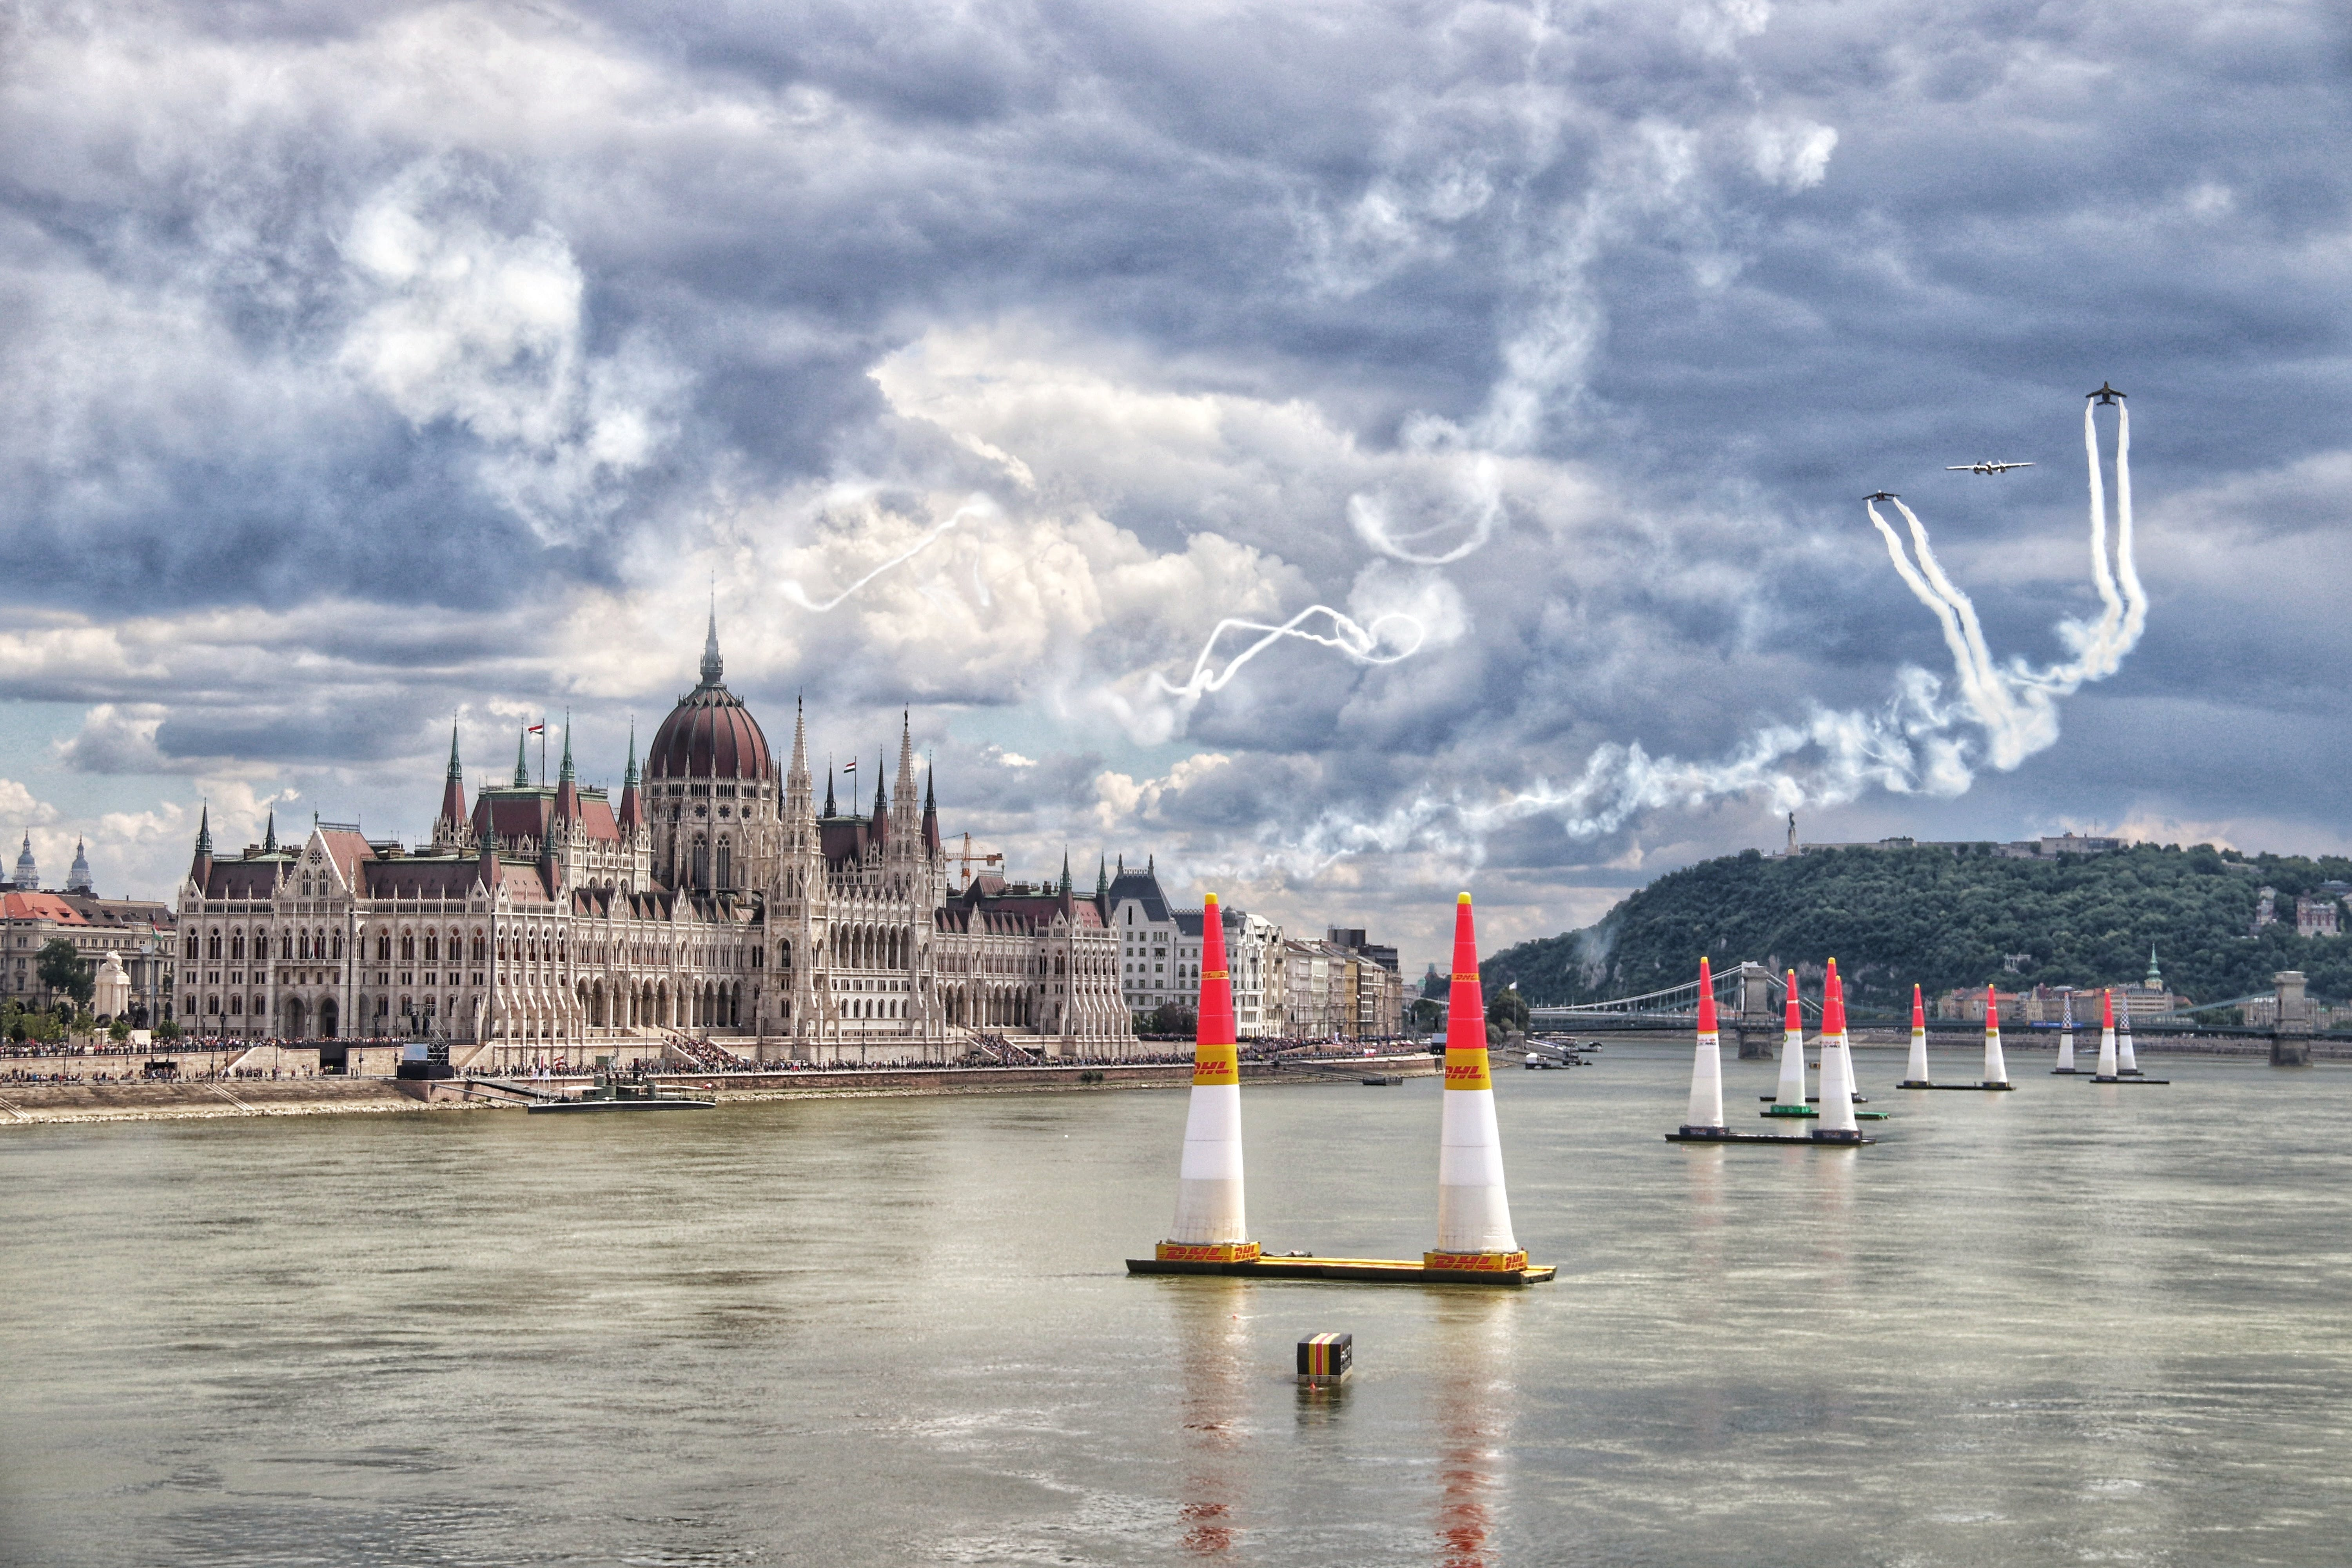 Free stock photo of #redbull #airrace